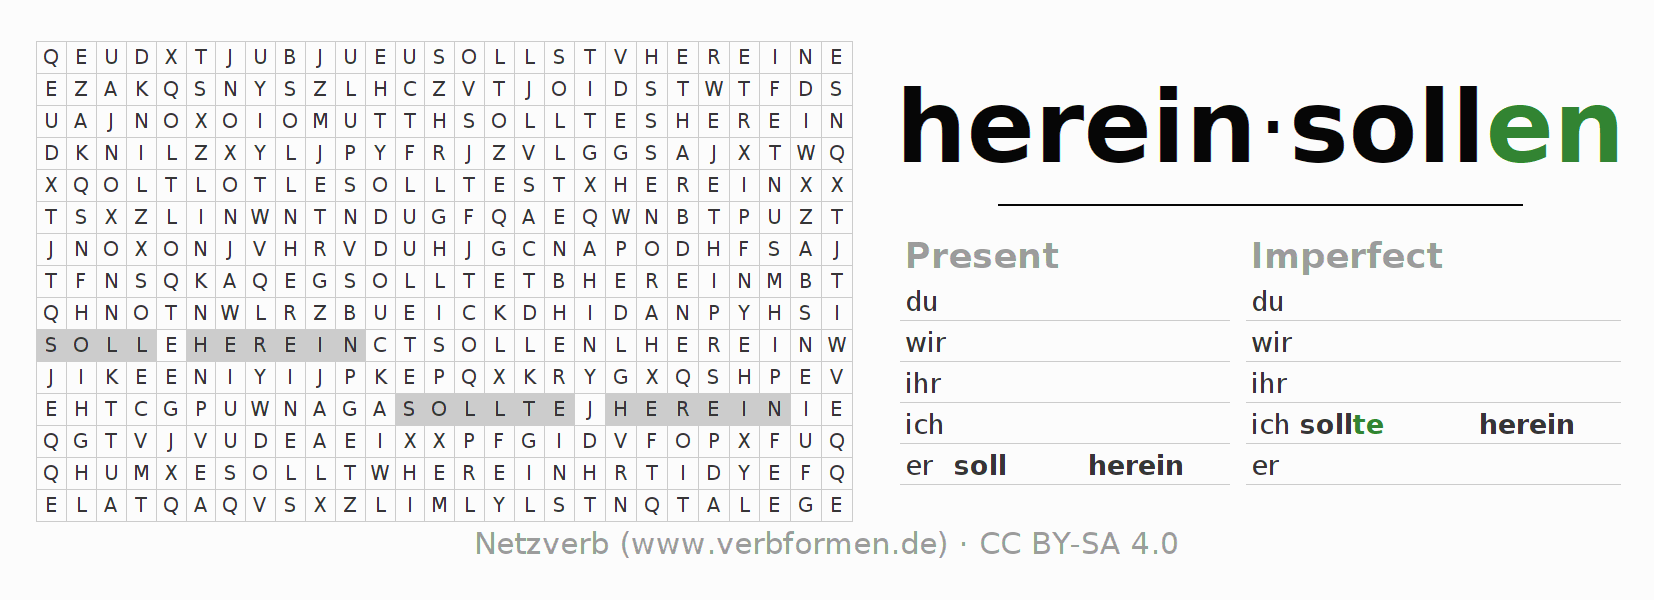 Word search puzzle for the conjugation of the verb hereinsollen